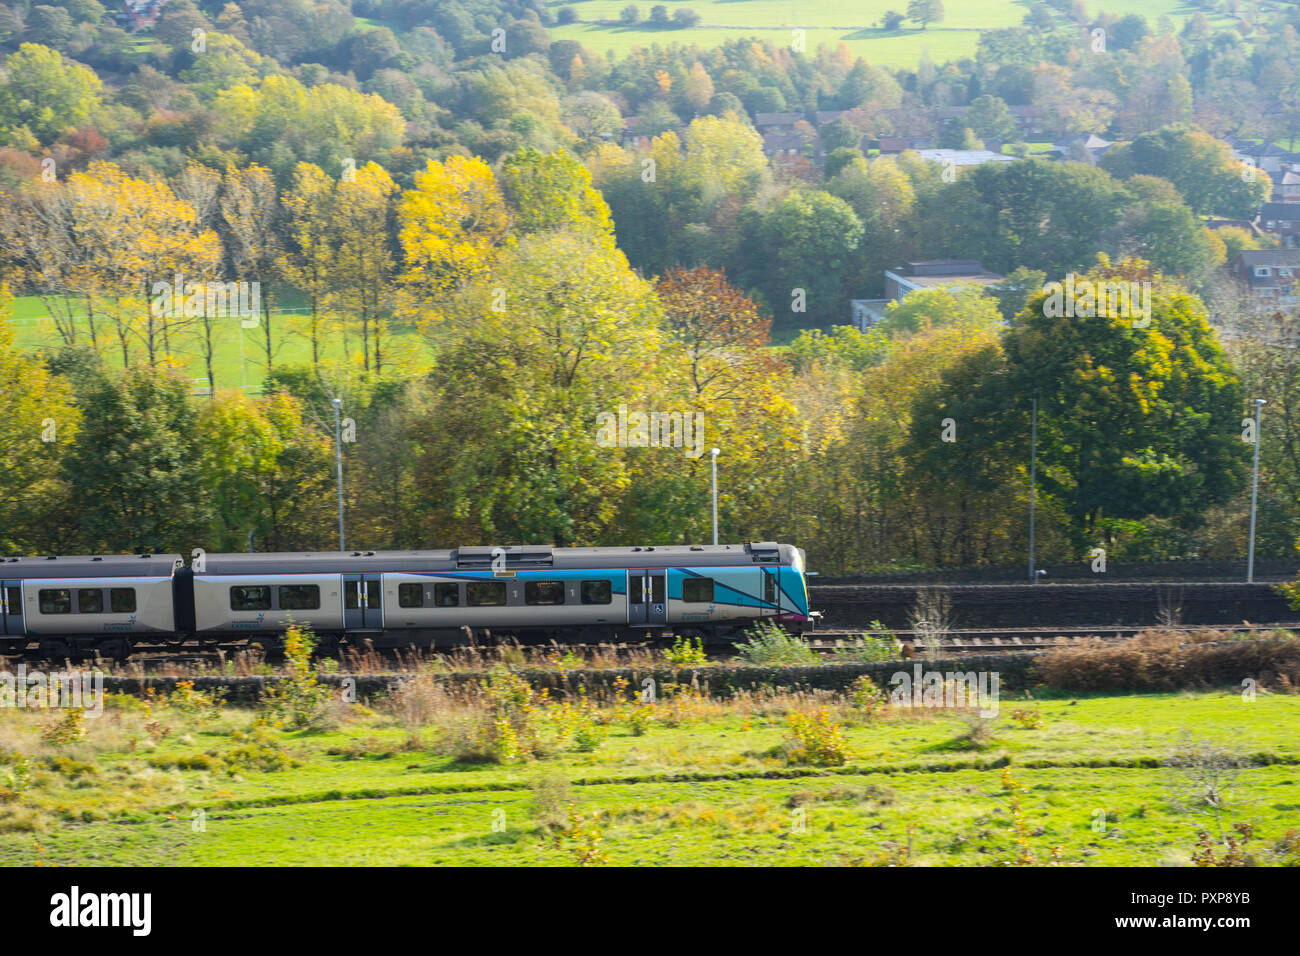 Trans Pennine commuter train passing through Uppermill area heading towards Manchester,Uppermill,Saddleworth, Greater Manchester, UK. - Stock Image